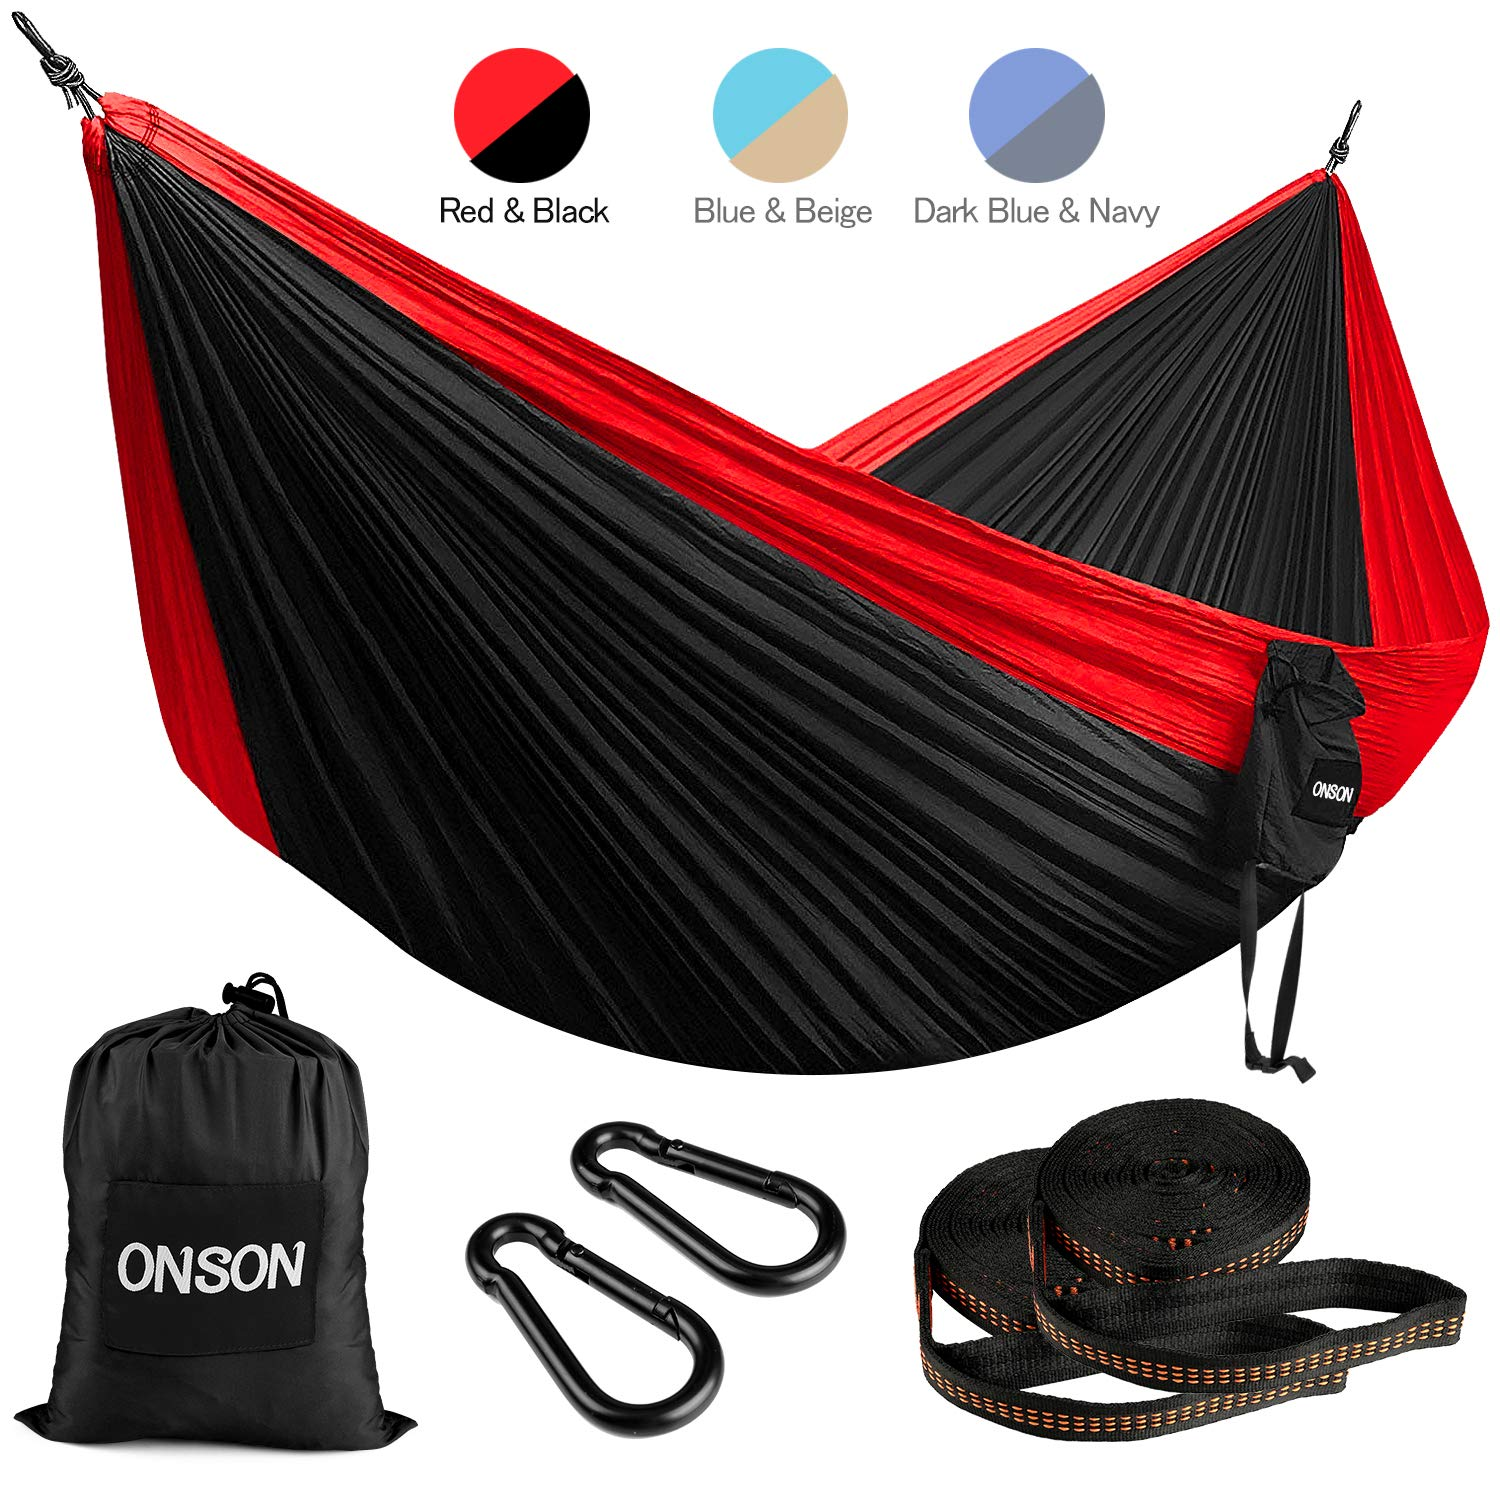 ONSON Camping Hammock, Lightweight Nylon Portable Hammock, Best Parachute Double Hammock for Outdoor Activities by ONSON